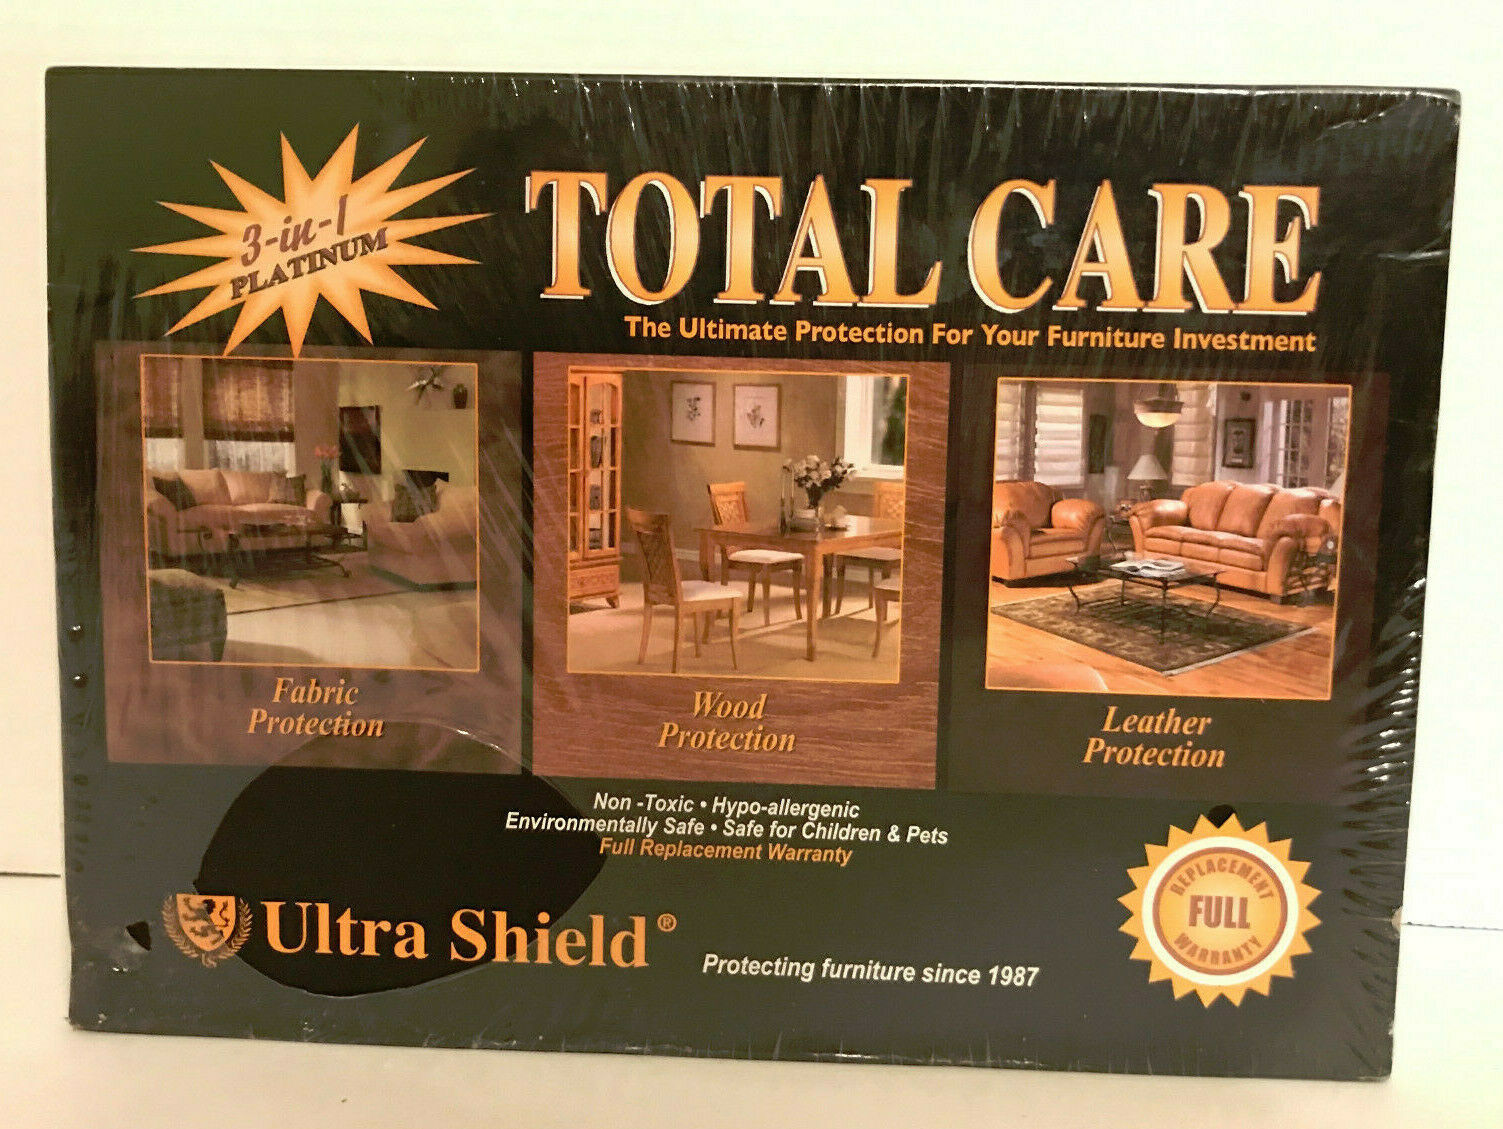 Primary image for Total Care Ultra Shield 3 in 1 Platinum Protection New Fabric Wood and Leather